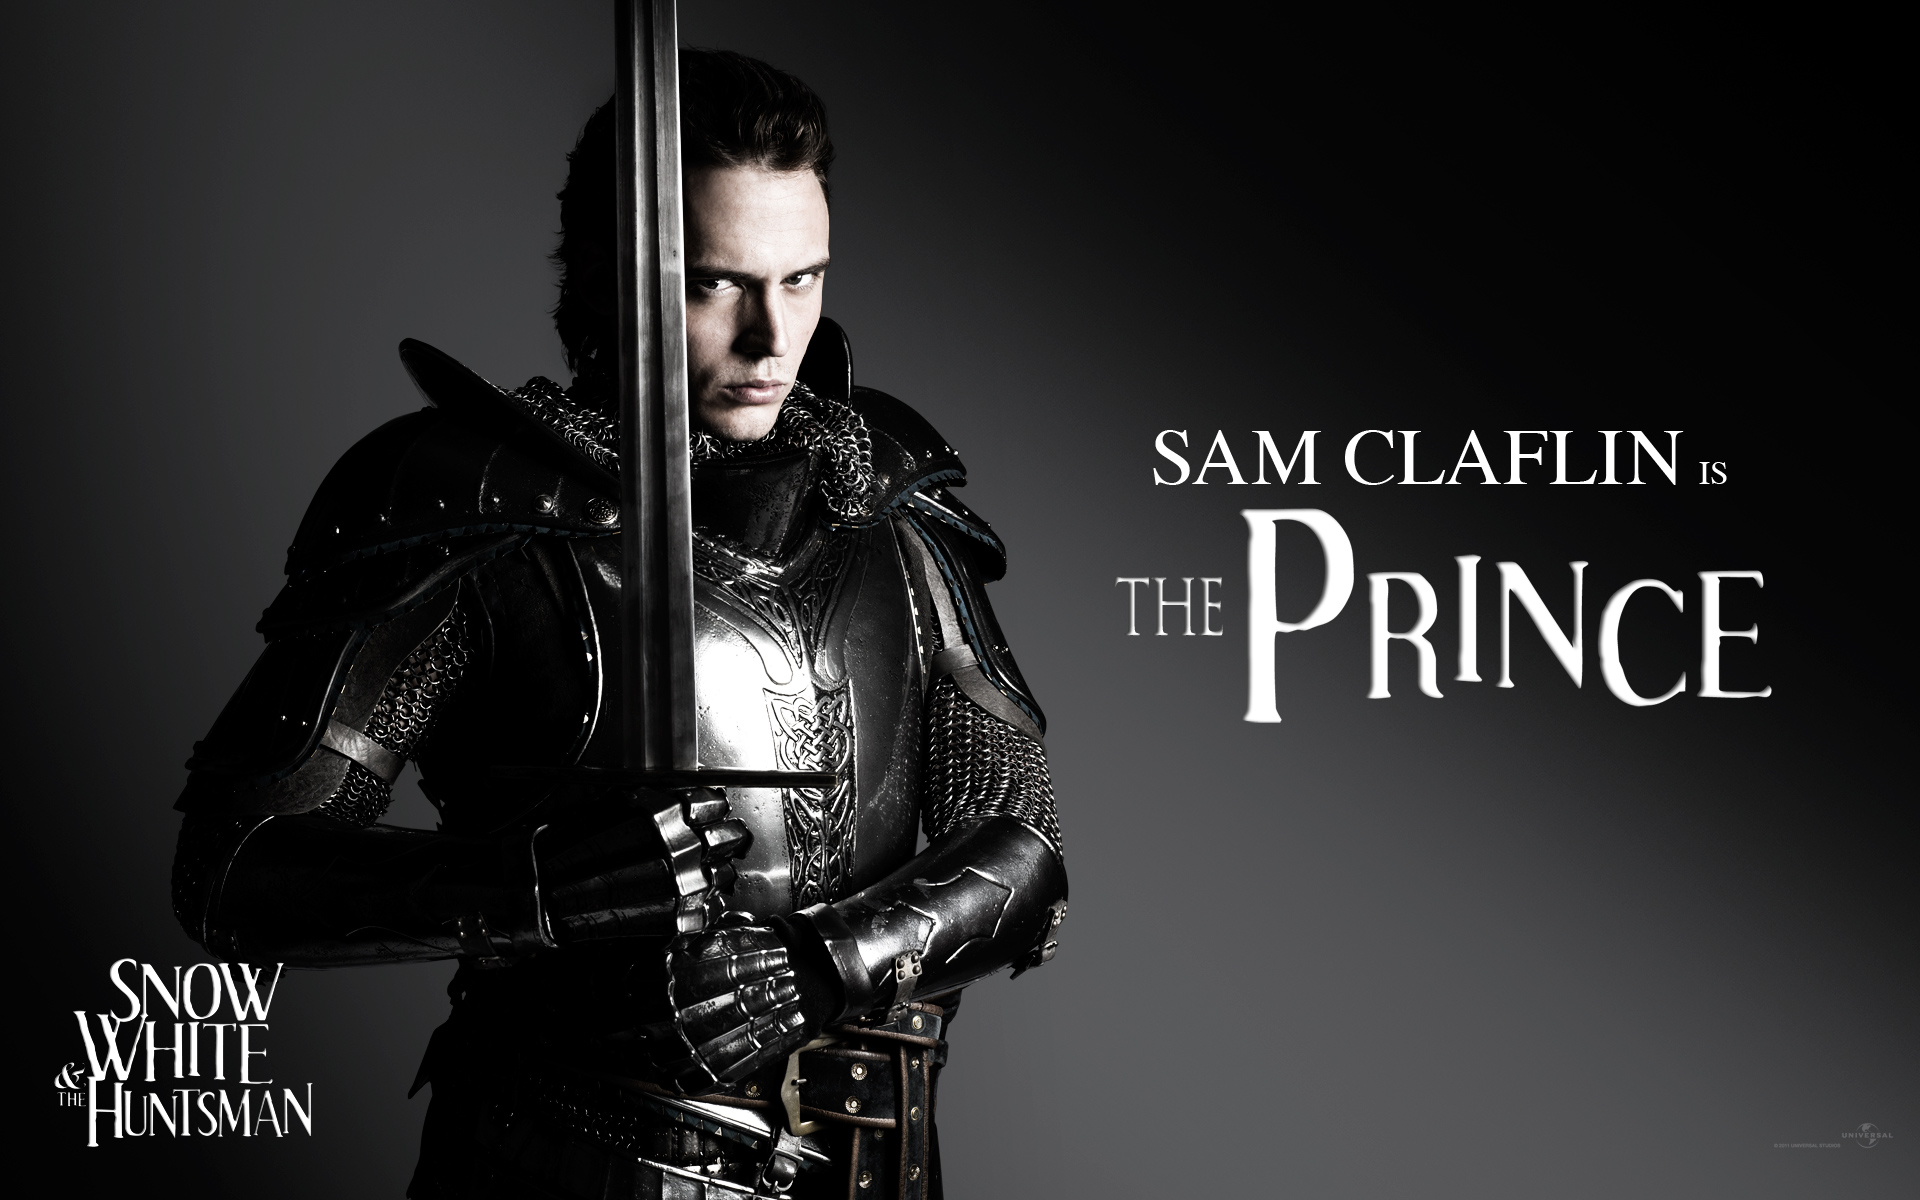 Sam Claflin Wallpapers High Resolution And Quality Download